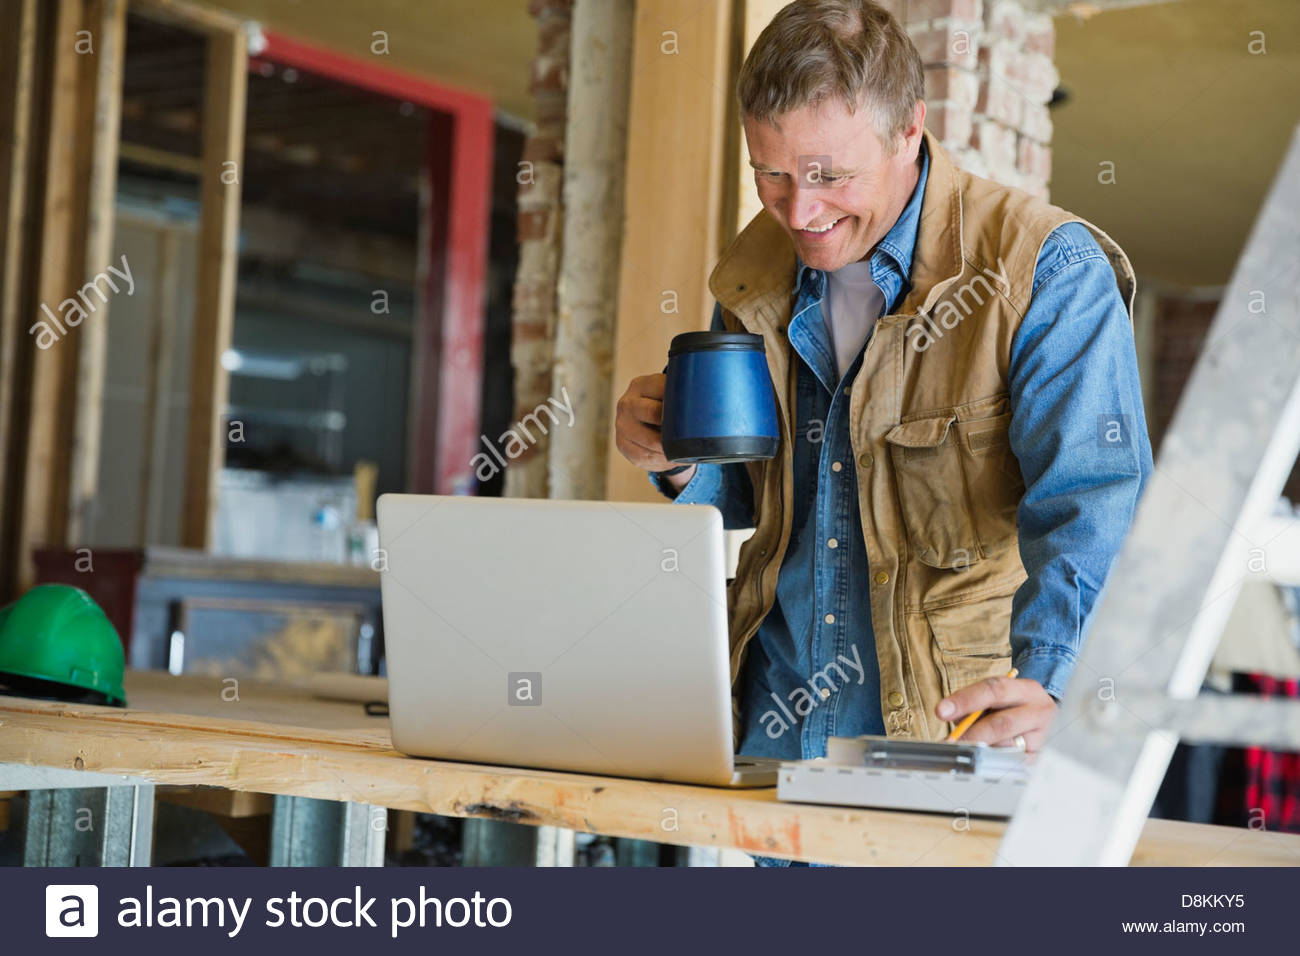 Foreman with coffee looking at laptop at construction site - Stock Image